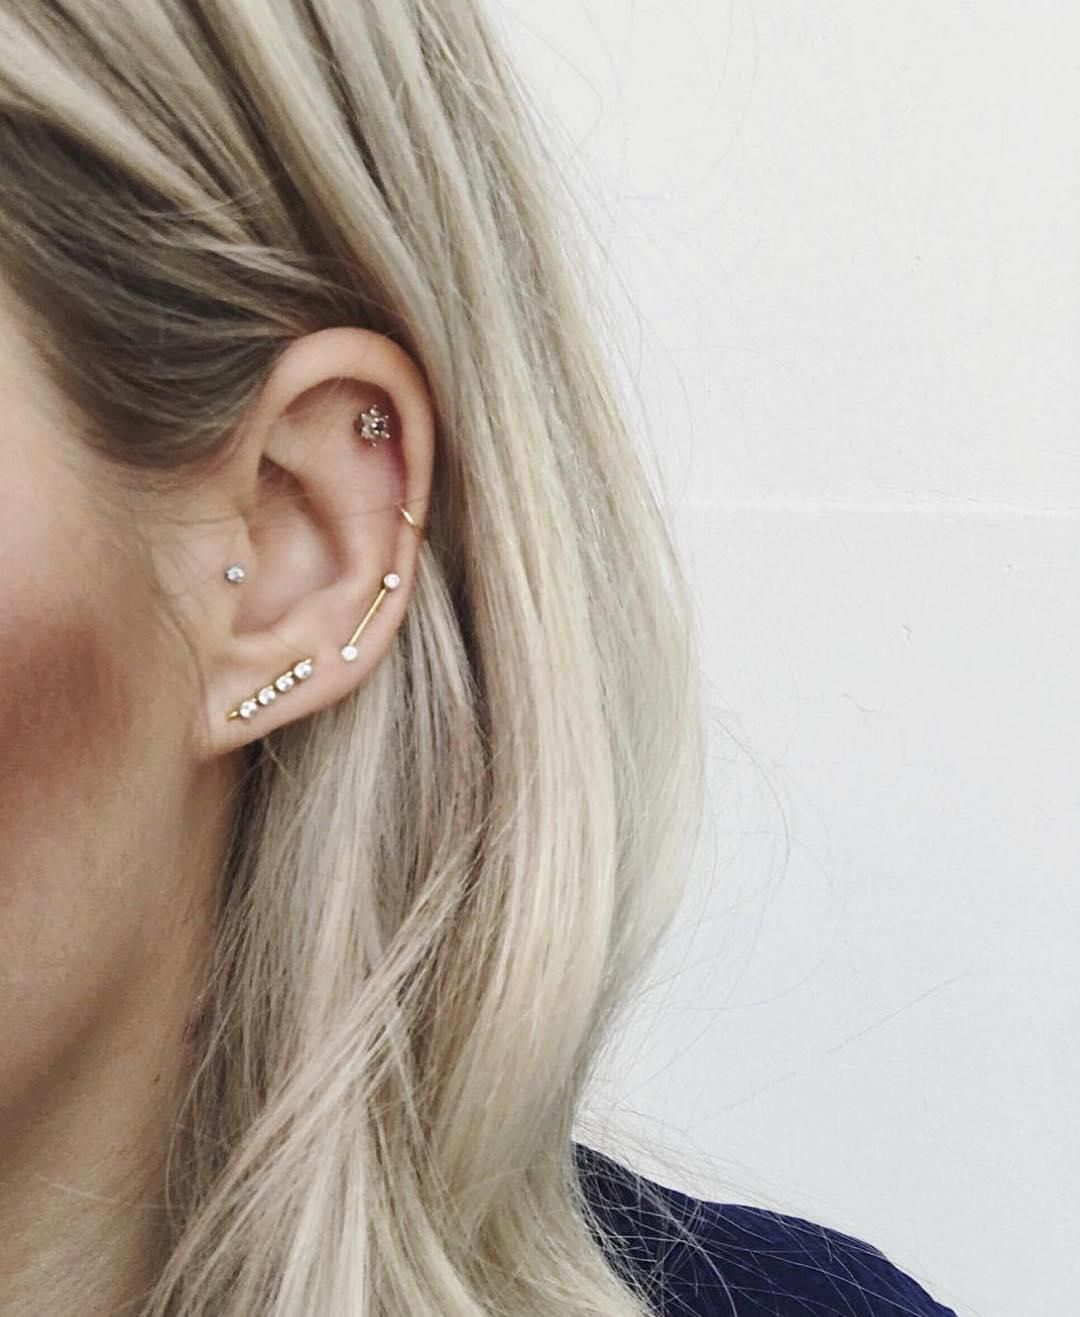 Nose piercing places near me  Pin by Kelly on tatoos and peicings  Pinterest  Piercings